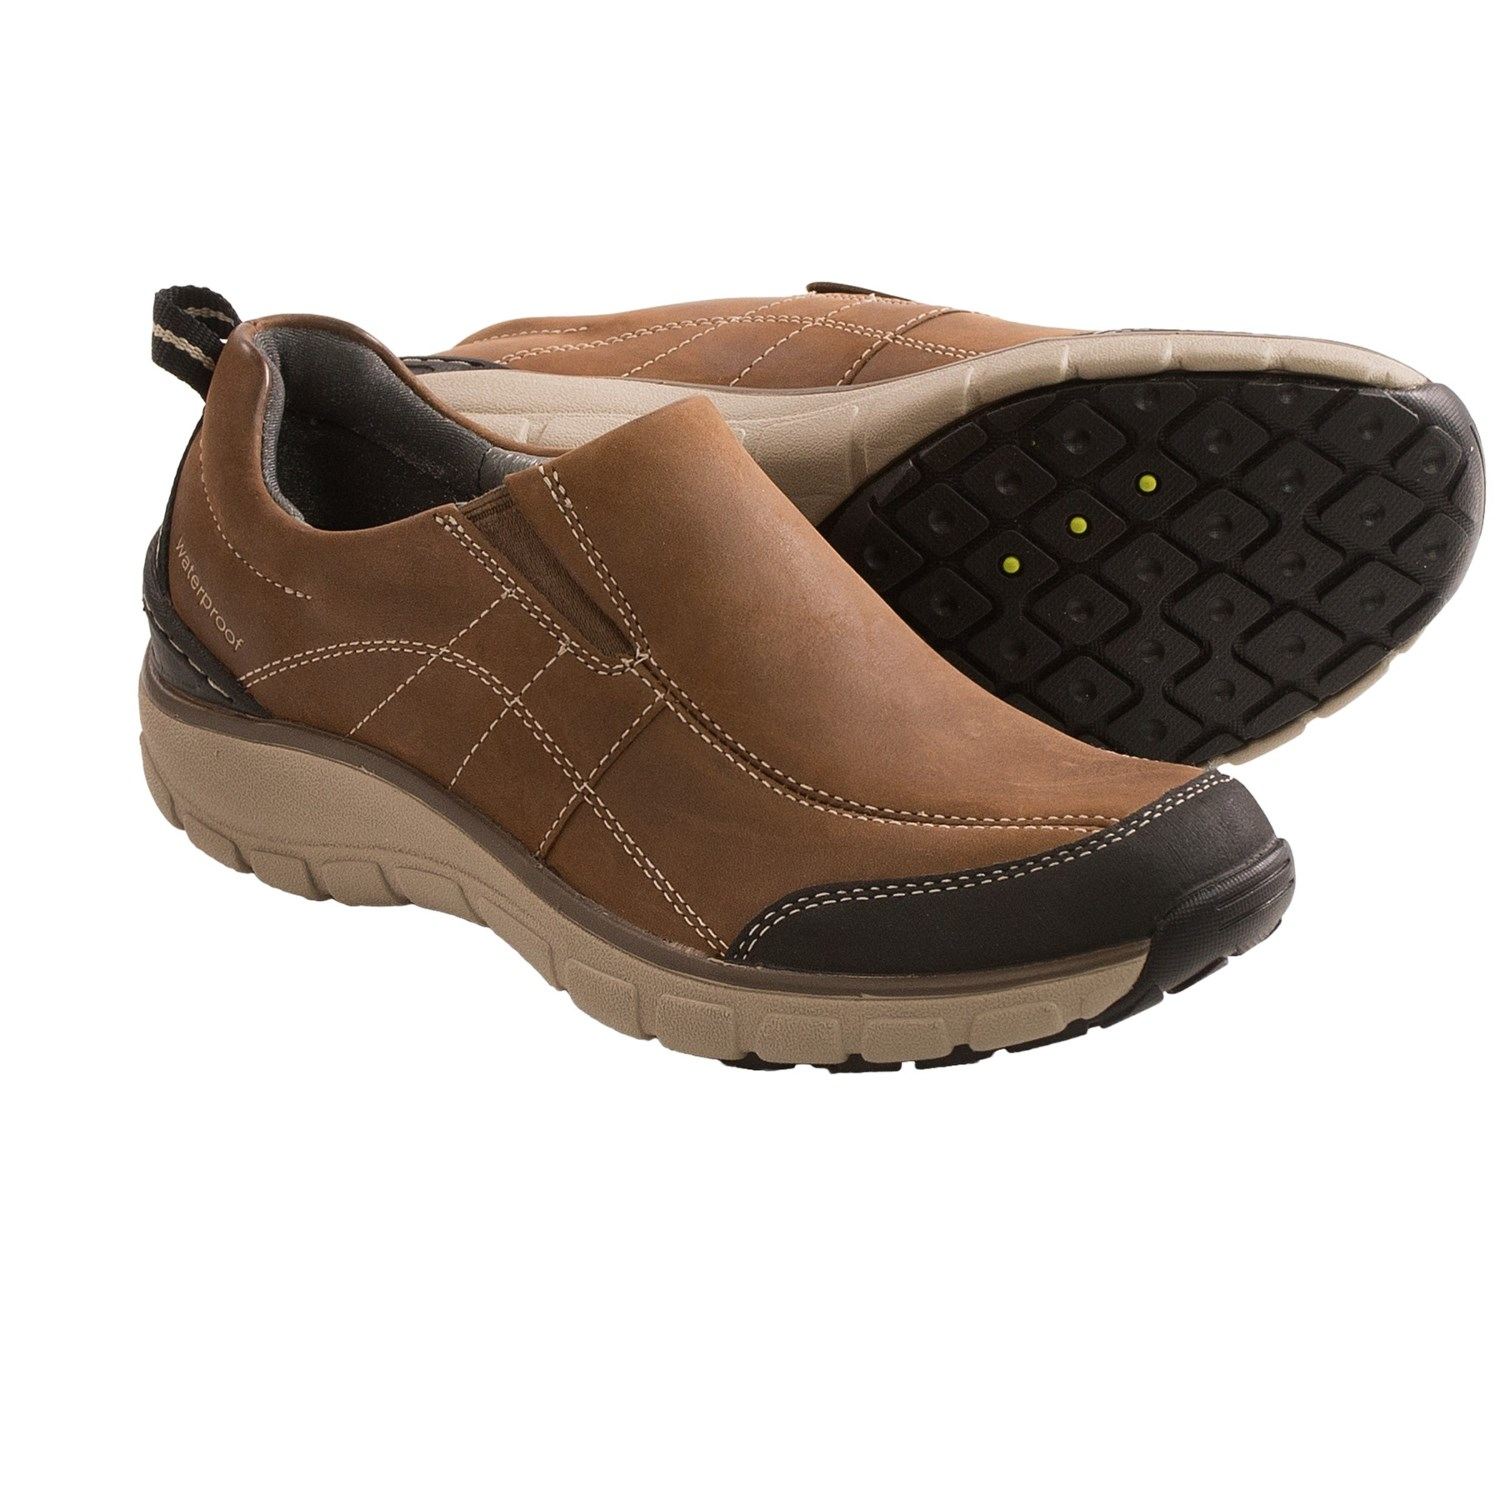 Clarks discount coupon india